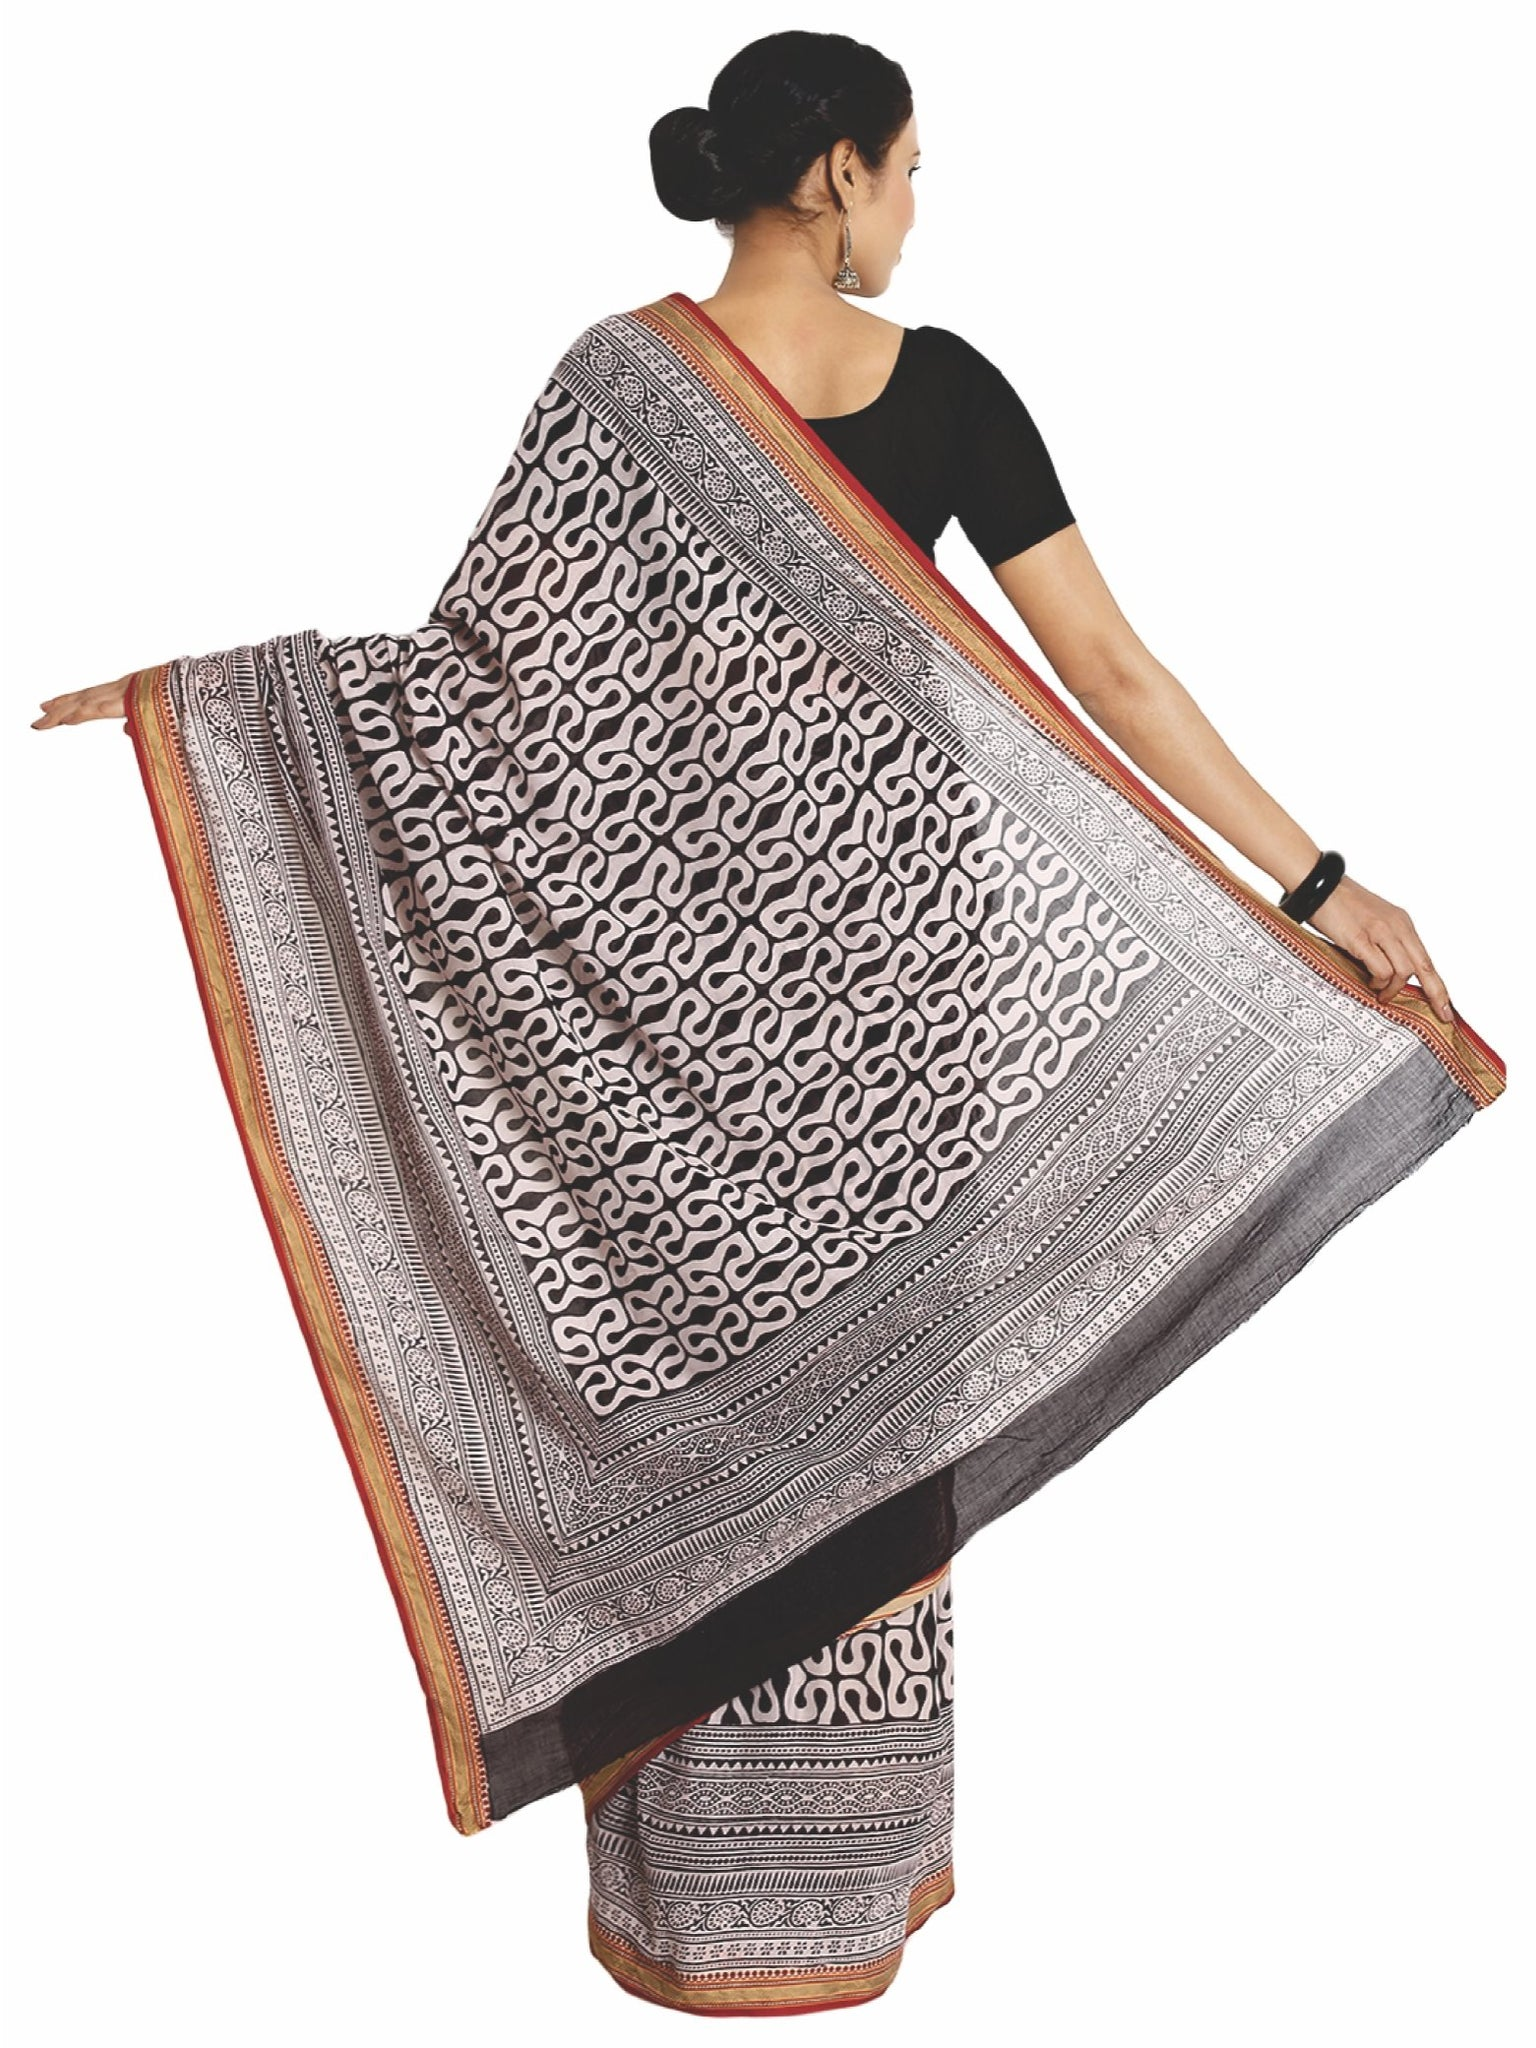 Off-White & Black Cotton Hand Block Bagh Print Handcrafted Saree-Saree-Kalakari India-ZIBASA0043-Bagh, Cotton, Geographical Indication, Hand Blocks, Hand Crafted, Heritage Prints, Natural Dyes, Sarees, Sustainable Fabrics-[Linen,Ethnic,wear,Fashionista,Handloom,Handicraft,Indigo,blockprint,block,print,Cotton,Chanderi,Blue, latest,classy,party,bollywood,trendy,summer,style,traditional,formal,elegant,unique,style,hand,block,print, dabu,booti,gift,present,glamorous,affordable,collectible,Sari,Saree